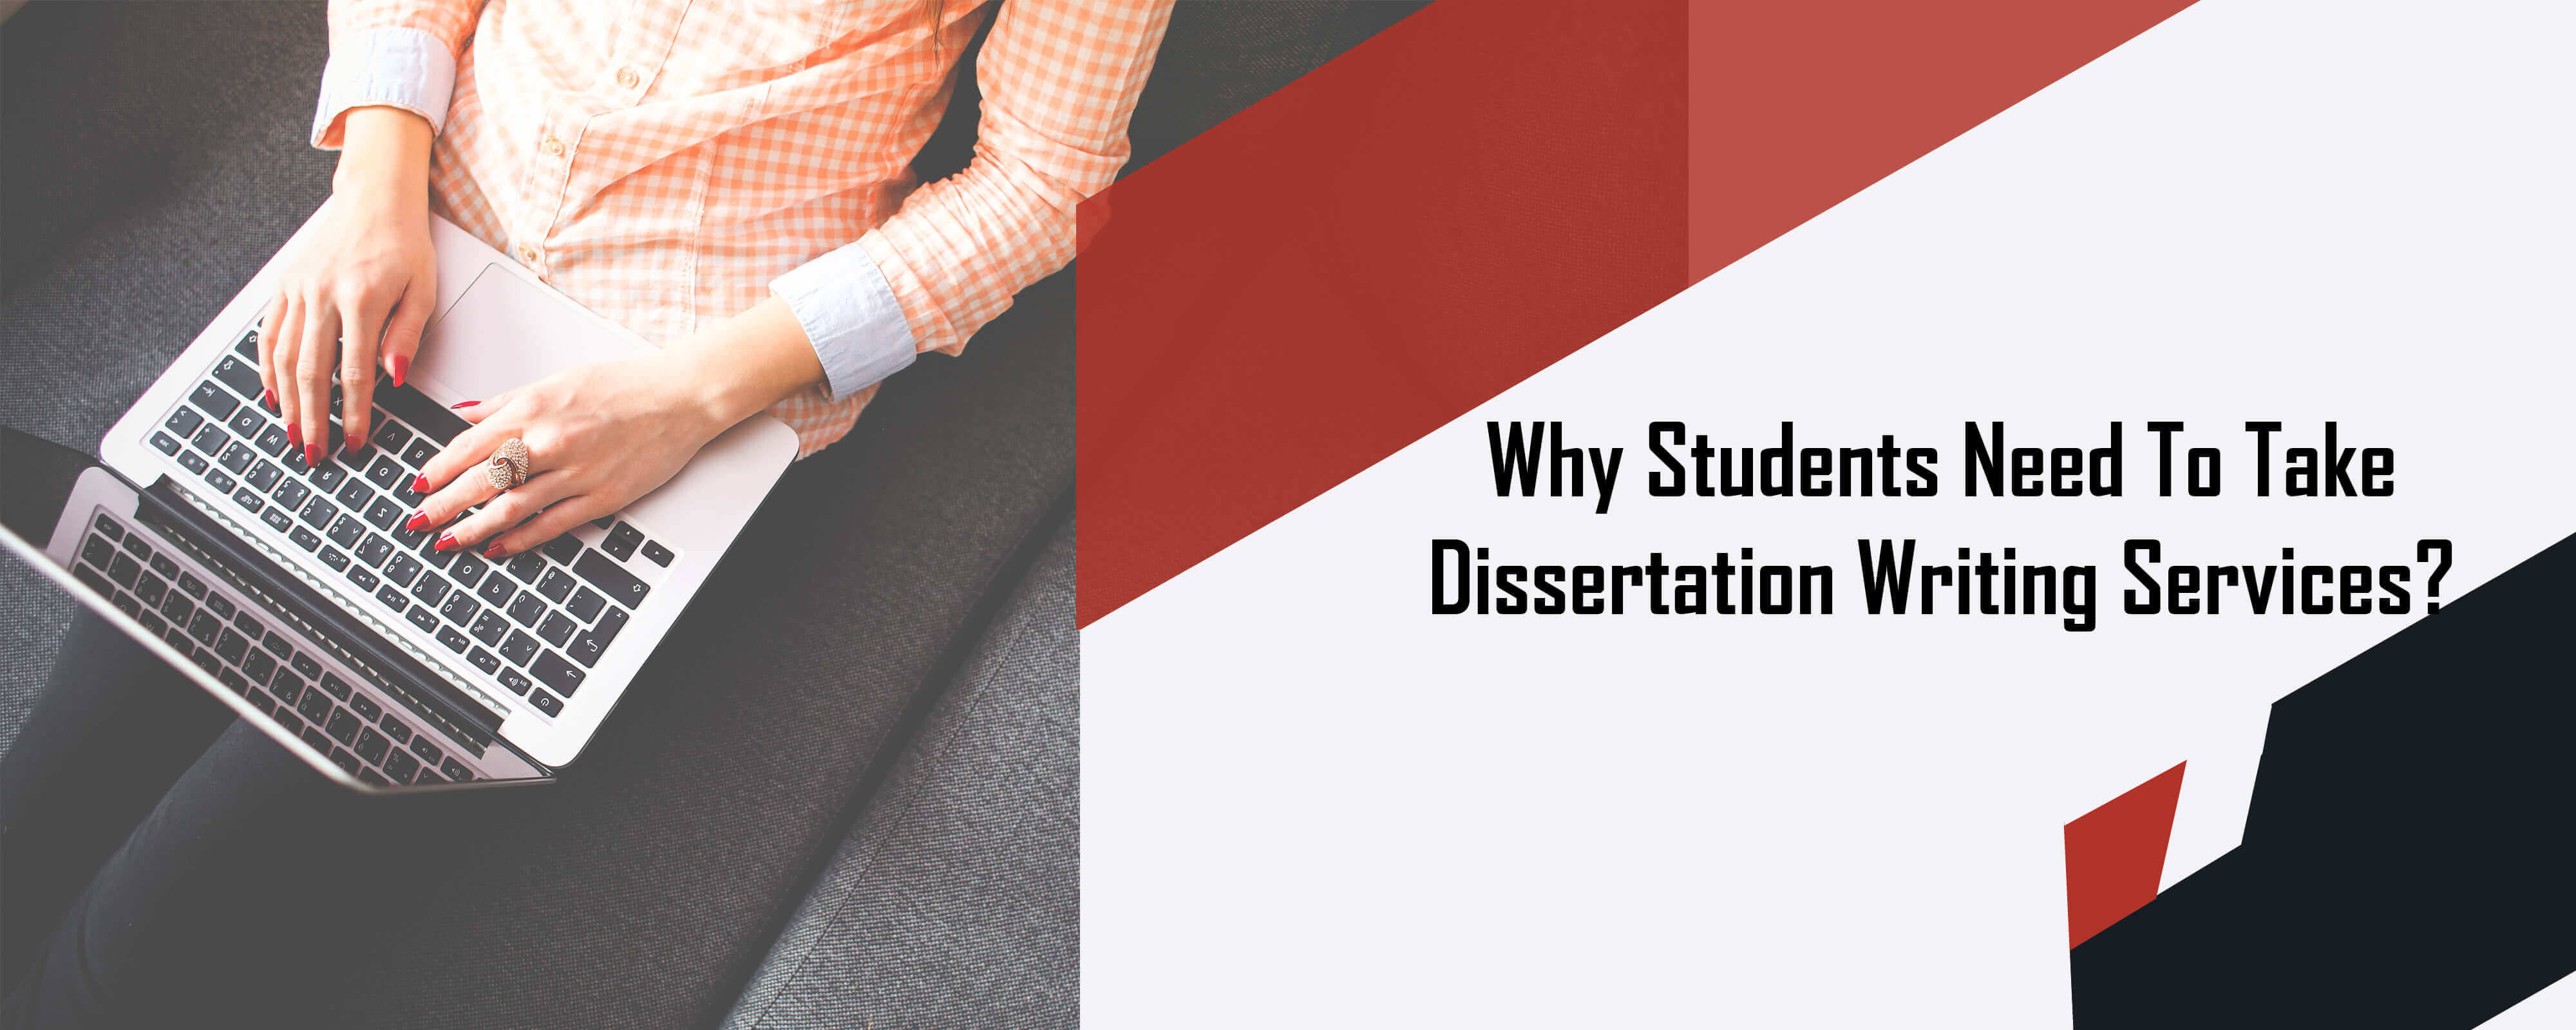 Why Students Need To Take Dissertation Writing Services?